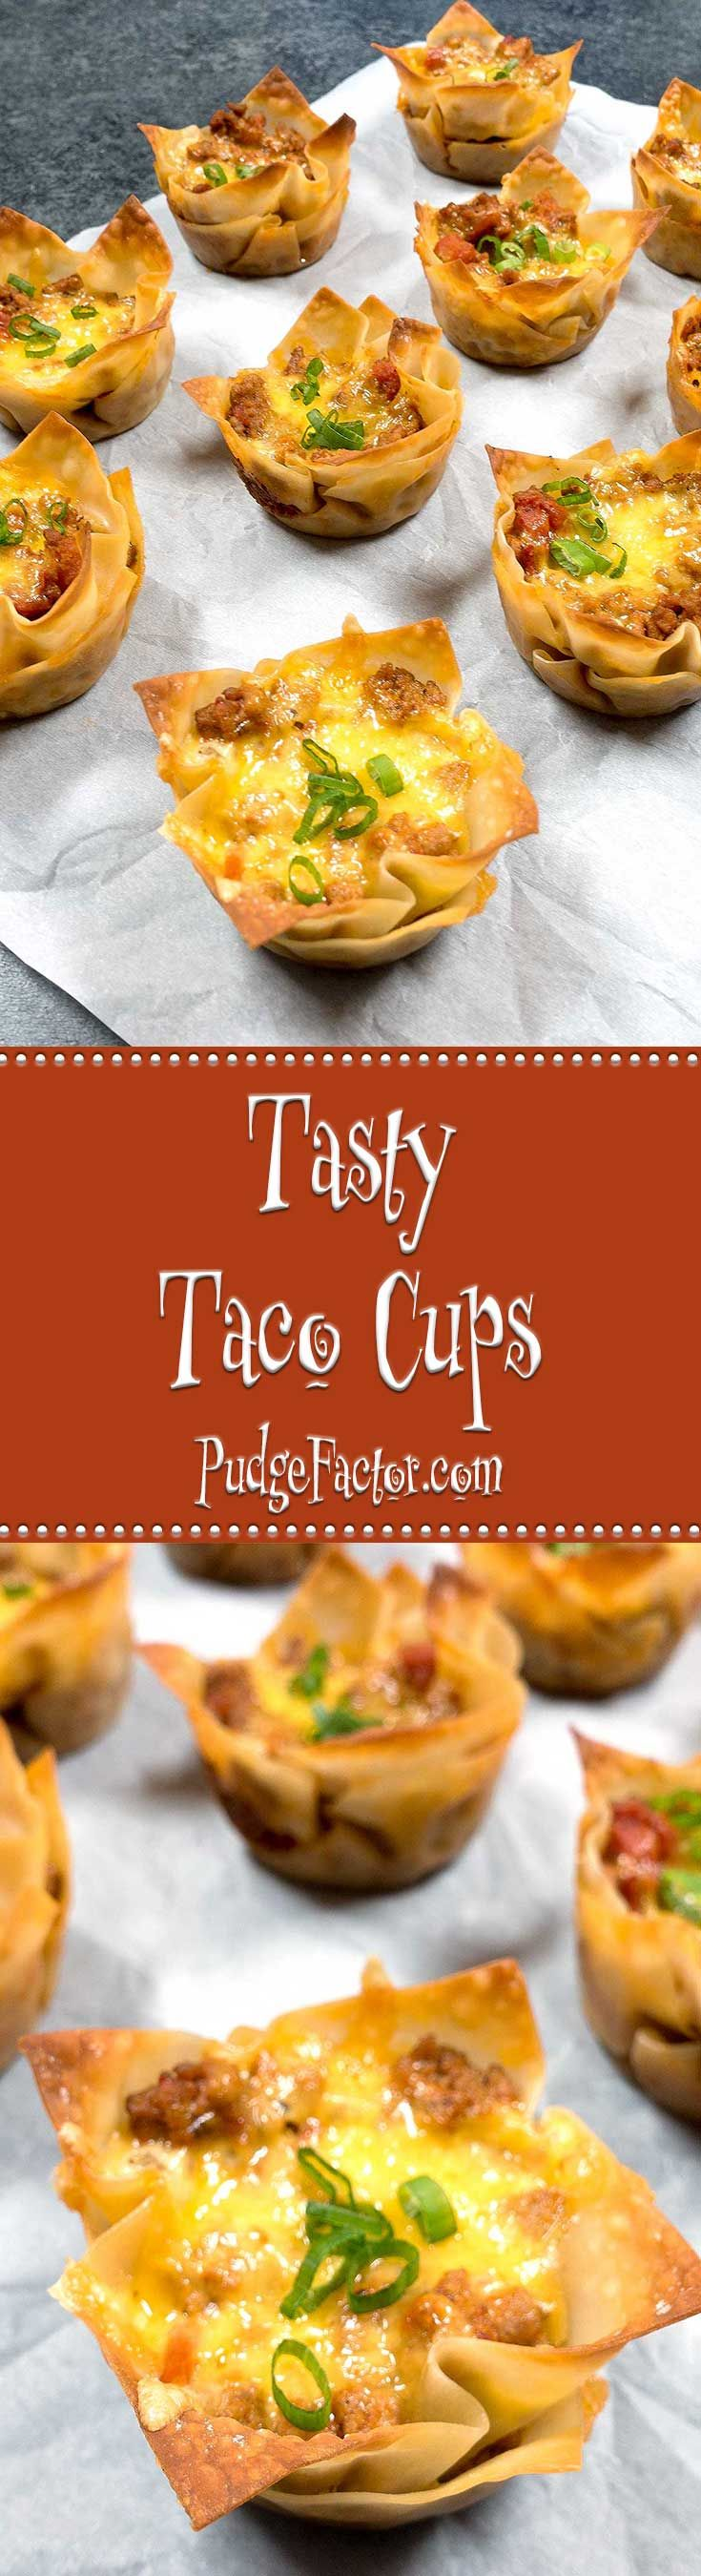 Tasty taco filling layered with melted cheese in crispy wonton wrappers makes the perfect easy to make appetizer.  via /c2king/